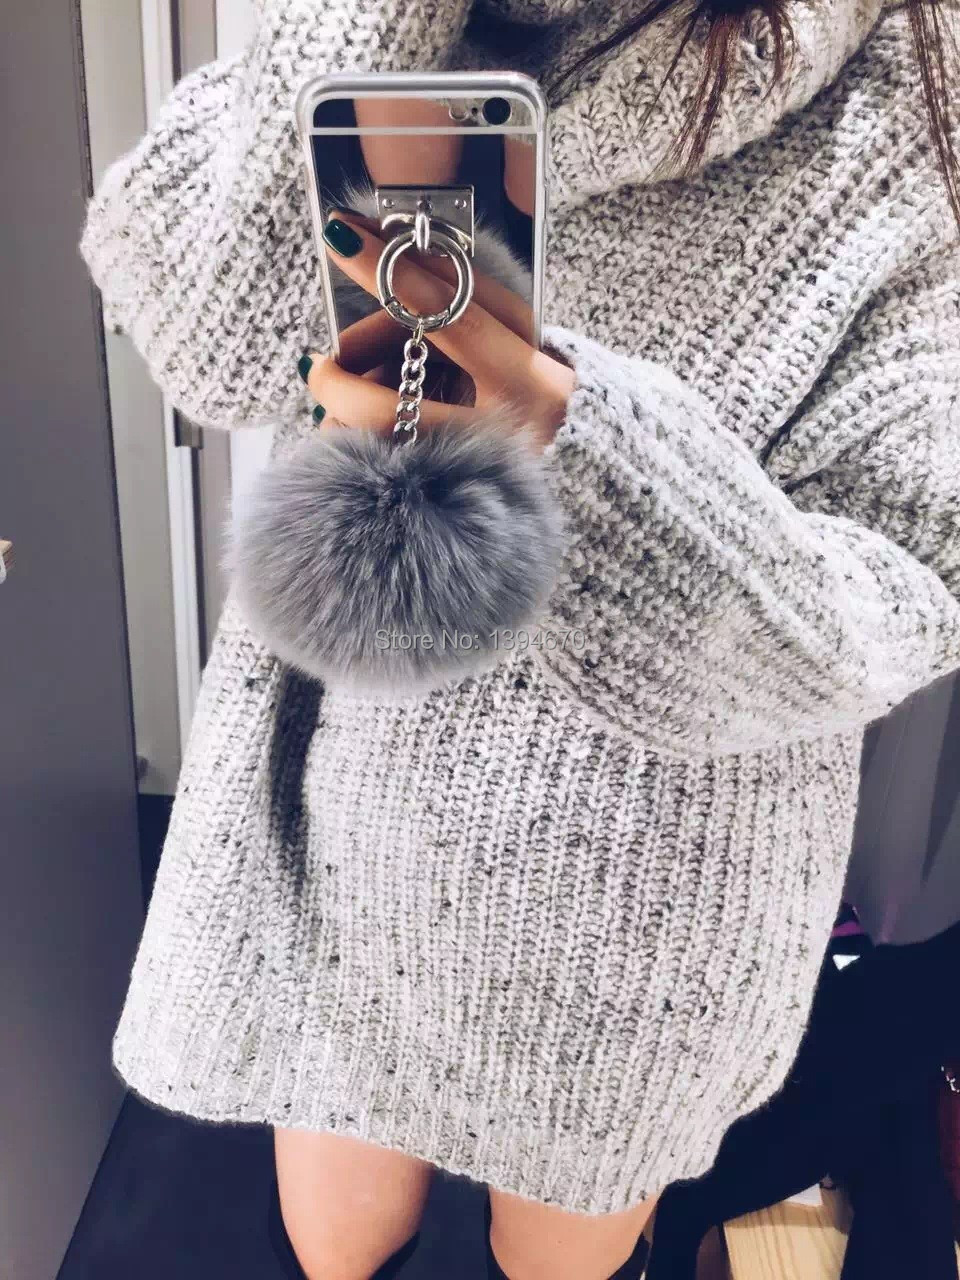 2016-Luxury-Metal-Rope-Mirror-TPU-Tassel-case-phone-Back-Cover-Capa-rabbit-fur-ball-For (2).jpg